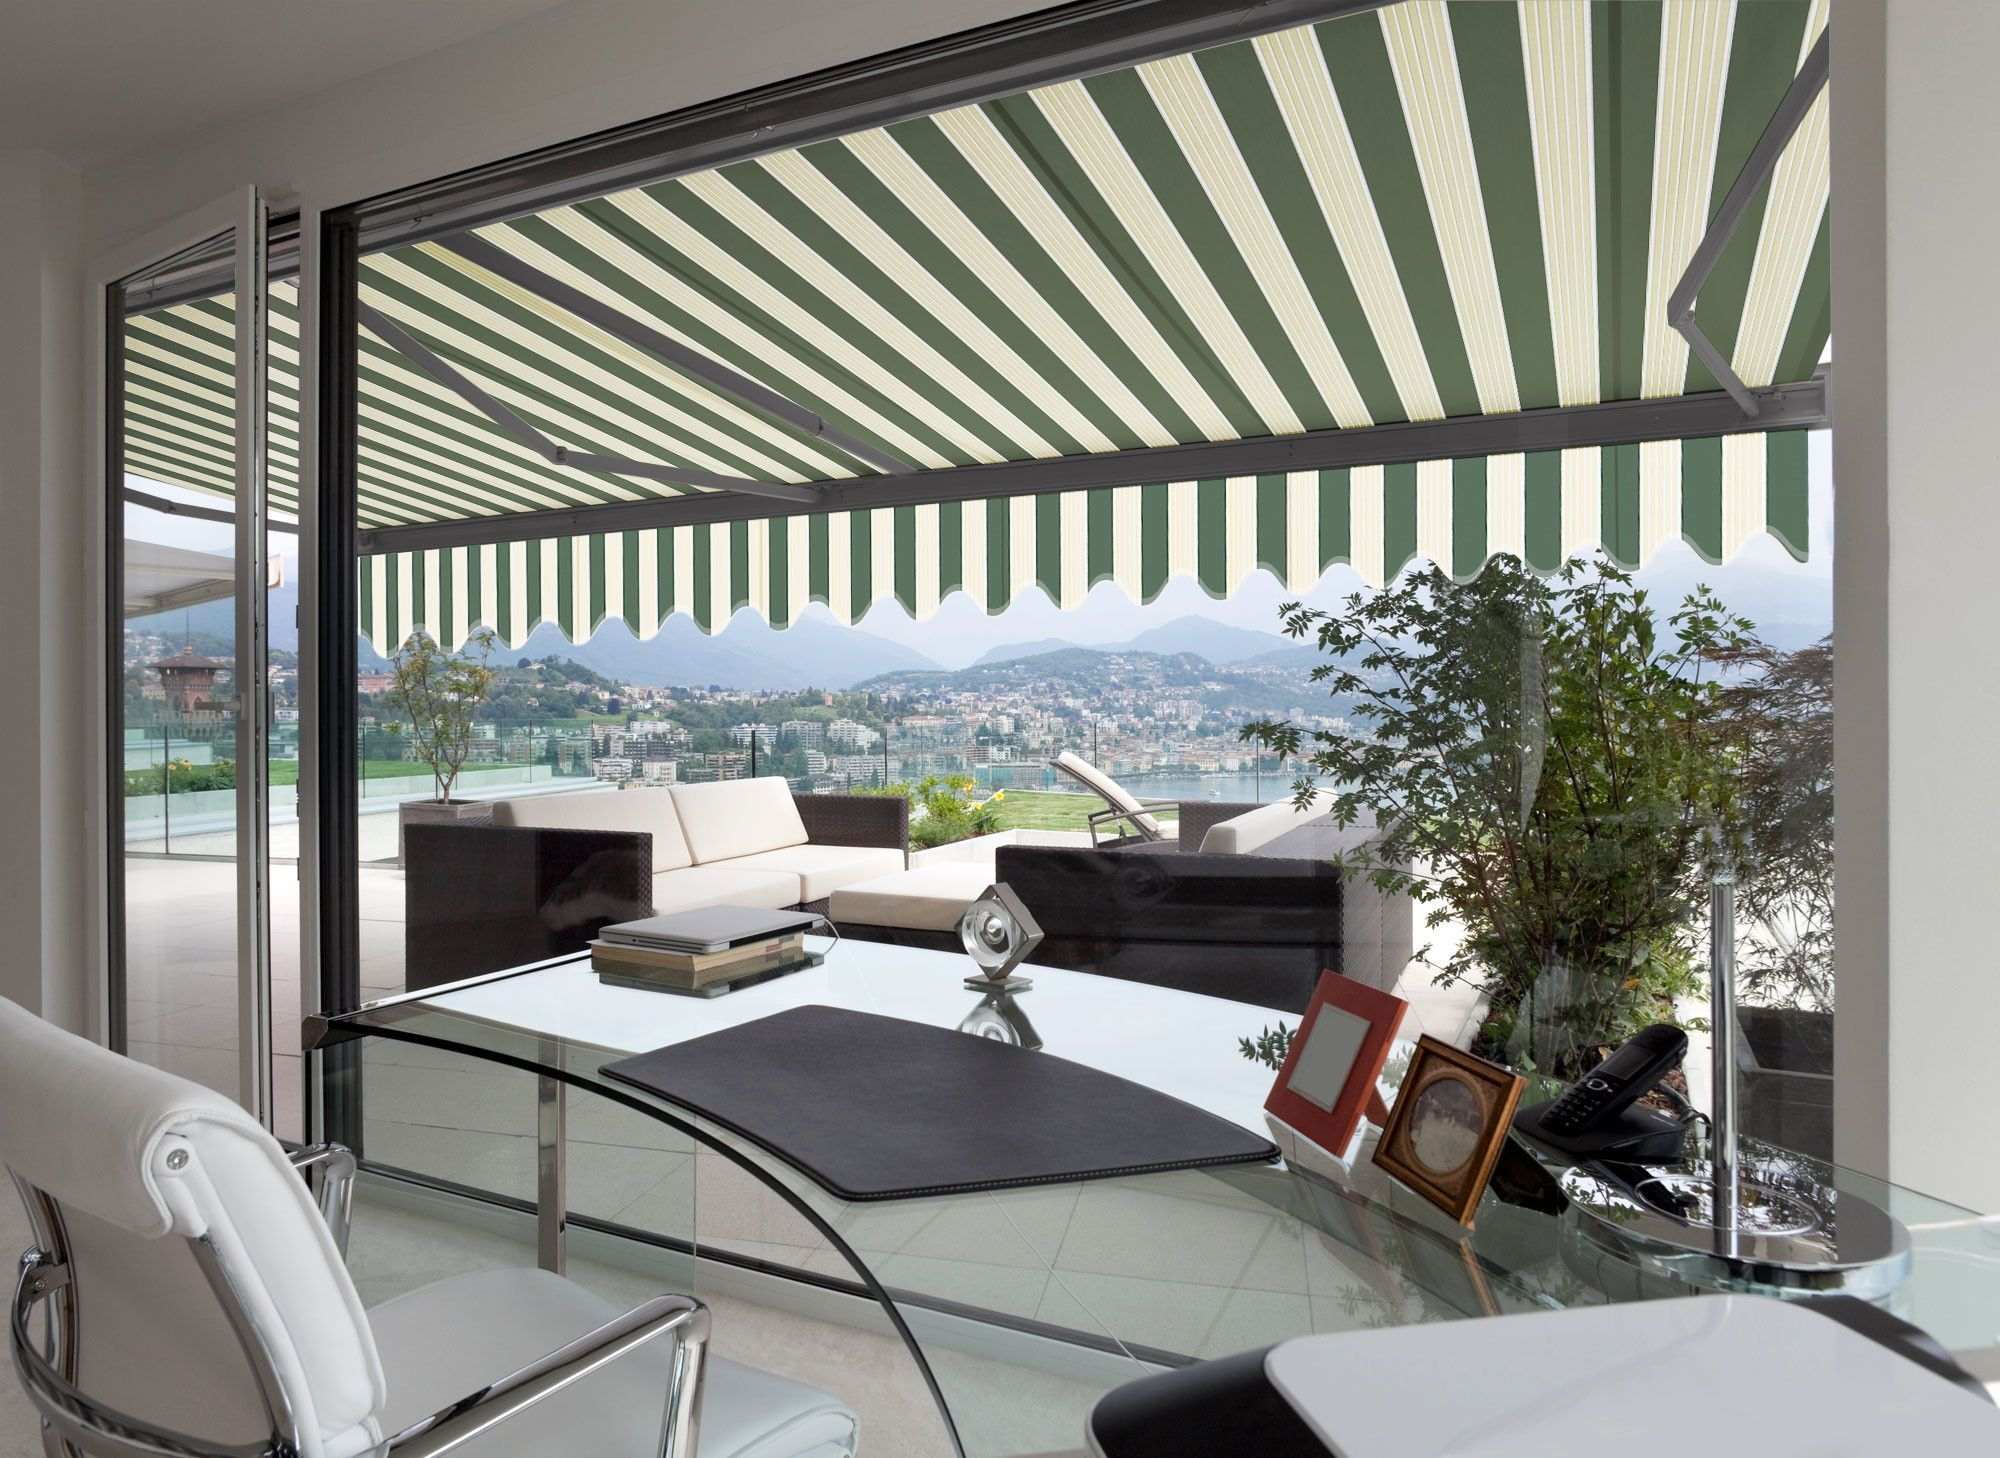 Electric Classic Semi-Cassette Awning   Retractable awning ...